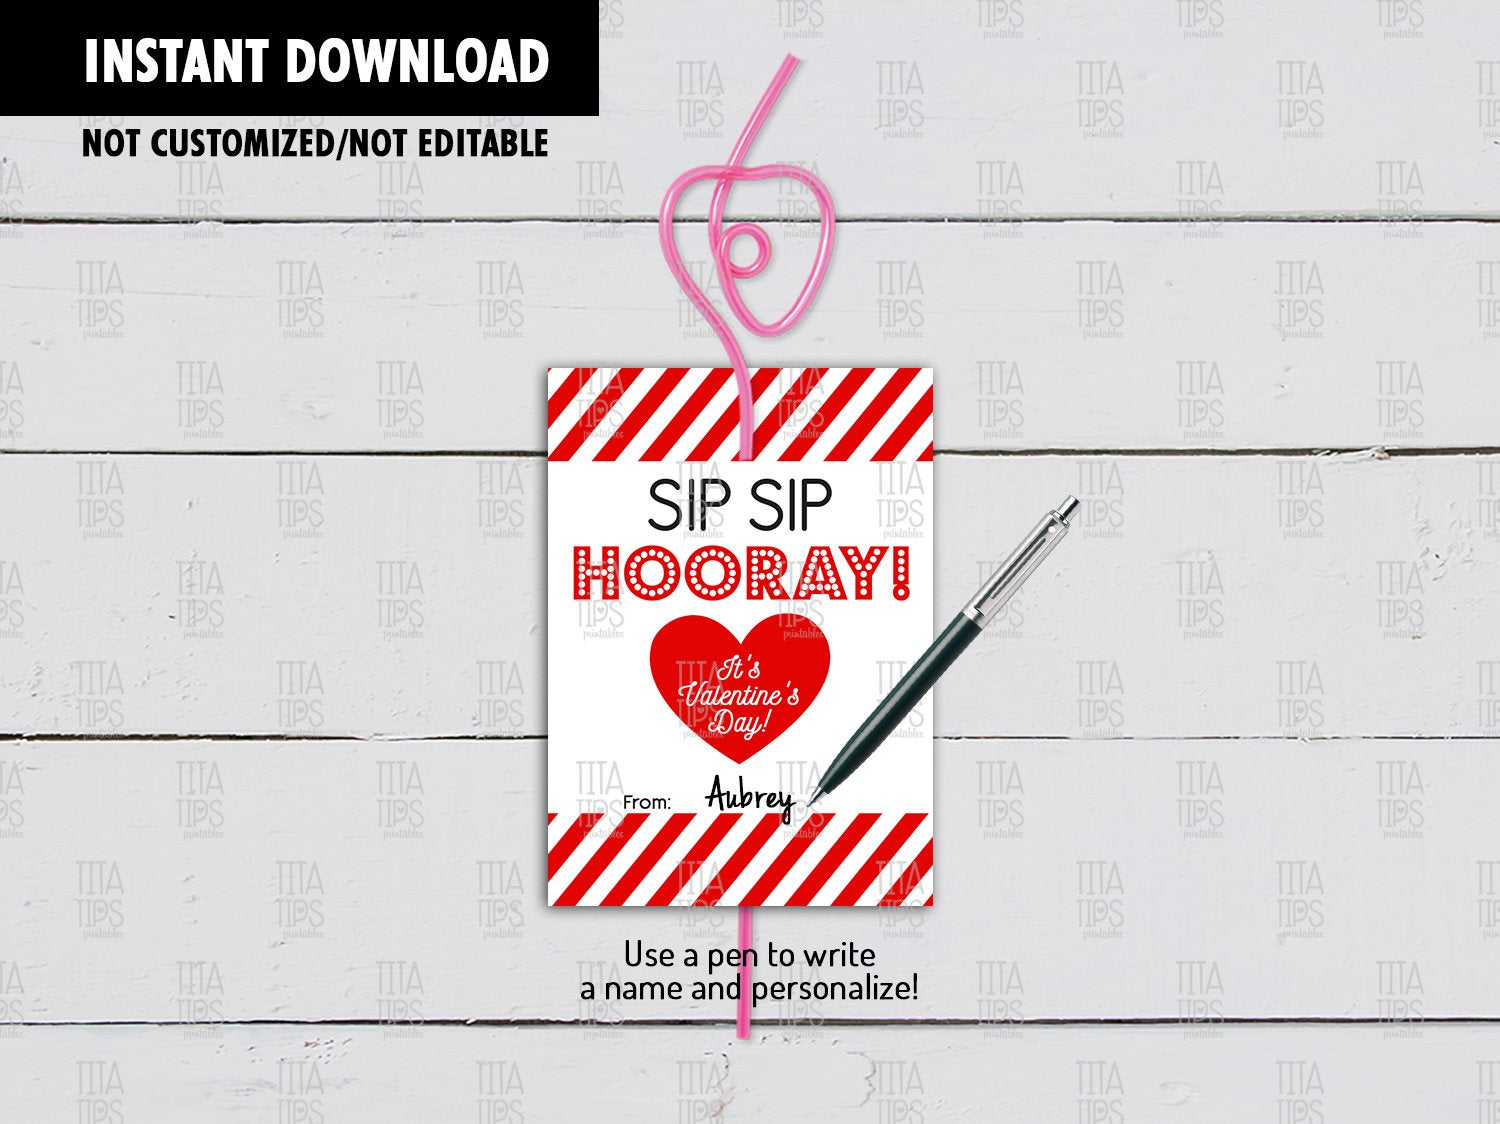 It's just a photo of Sip Sip Hooray Printable pertaining to floral